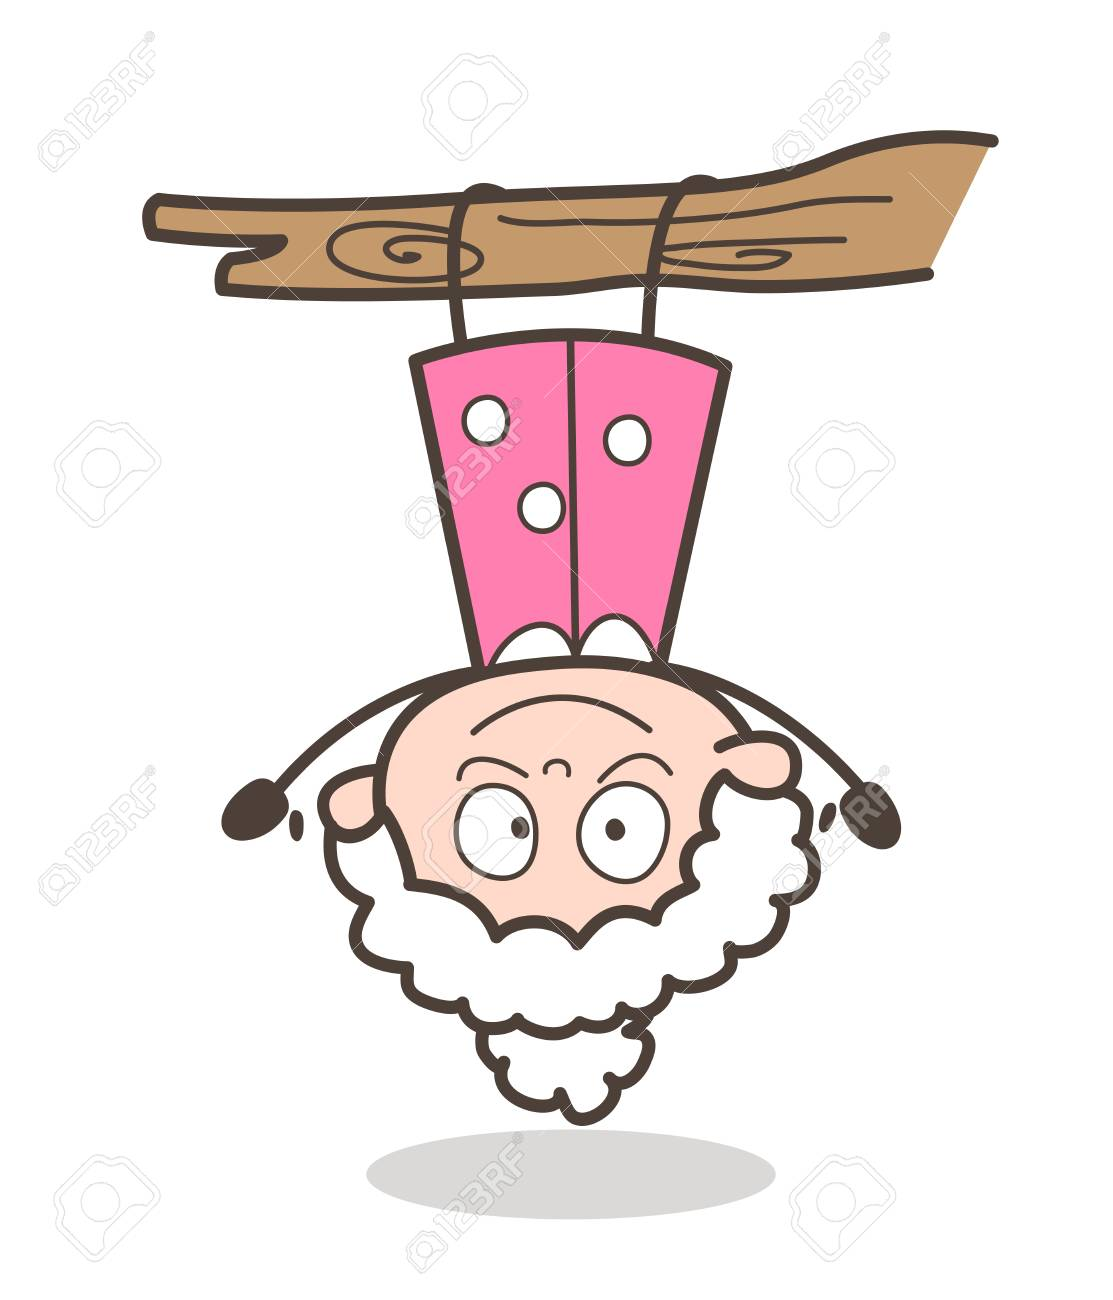 Cartoon Funny Granny Hanging Upside Down Vector.